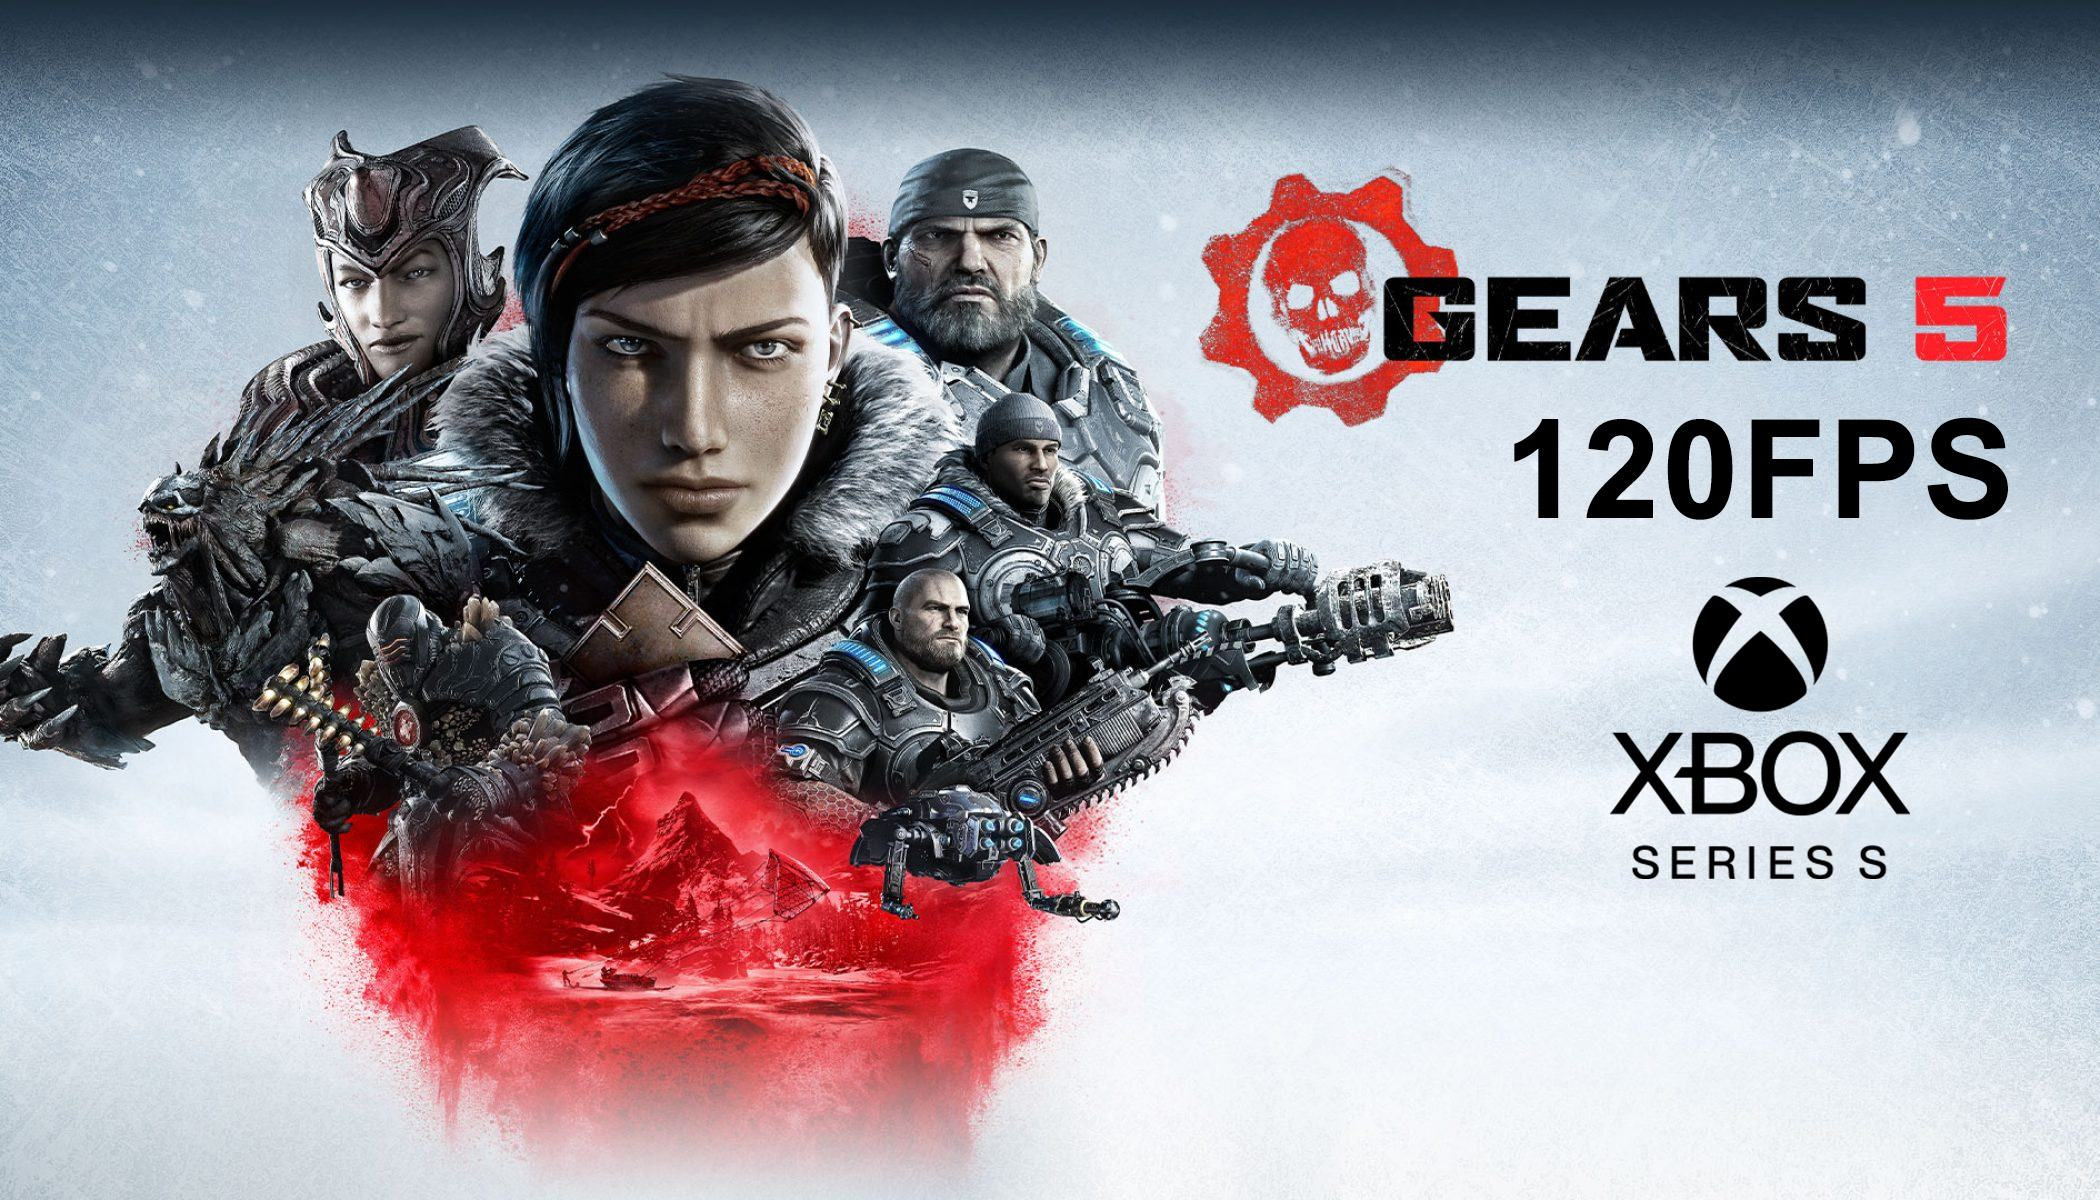 Gears 5 Xbox Series S 120fps